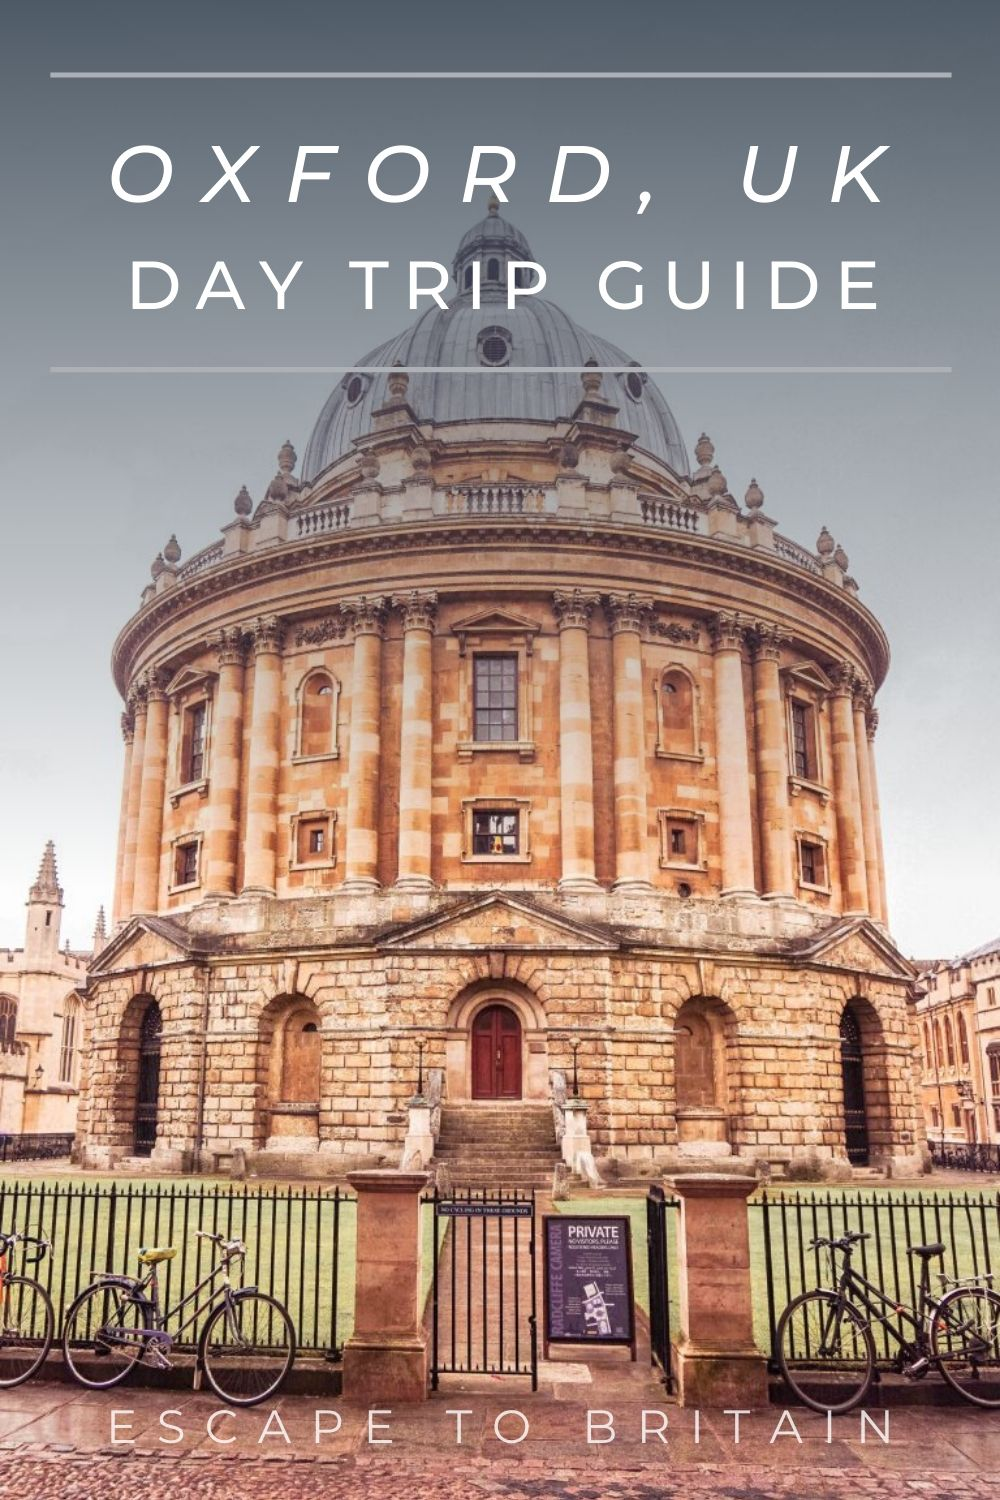 An Oxford Day Trip: How to Spend One Day in Oxford Itinerary. Here are the best things to do in Oxford in 24 hours including how to get from London to Oxford